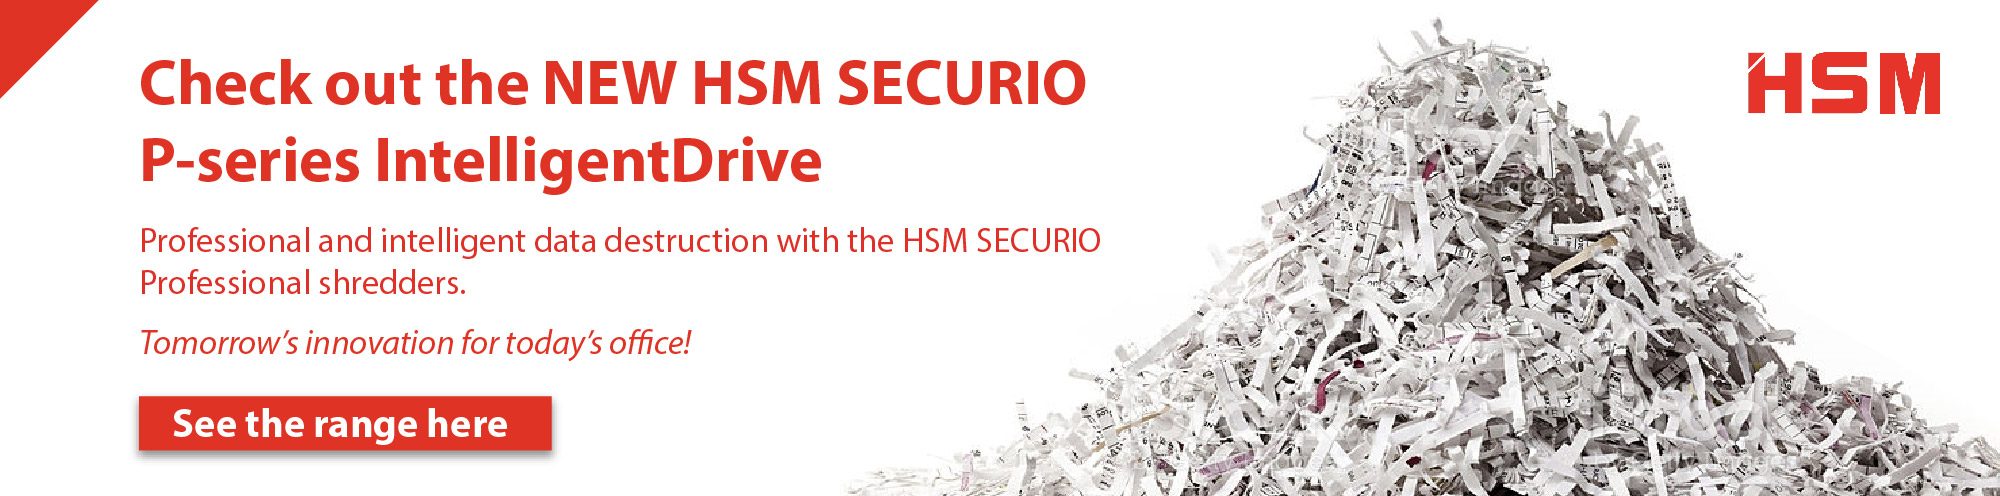 NEW HSM Securio P-series IntelligentDrive Banner Image